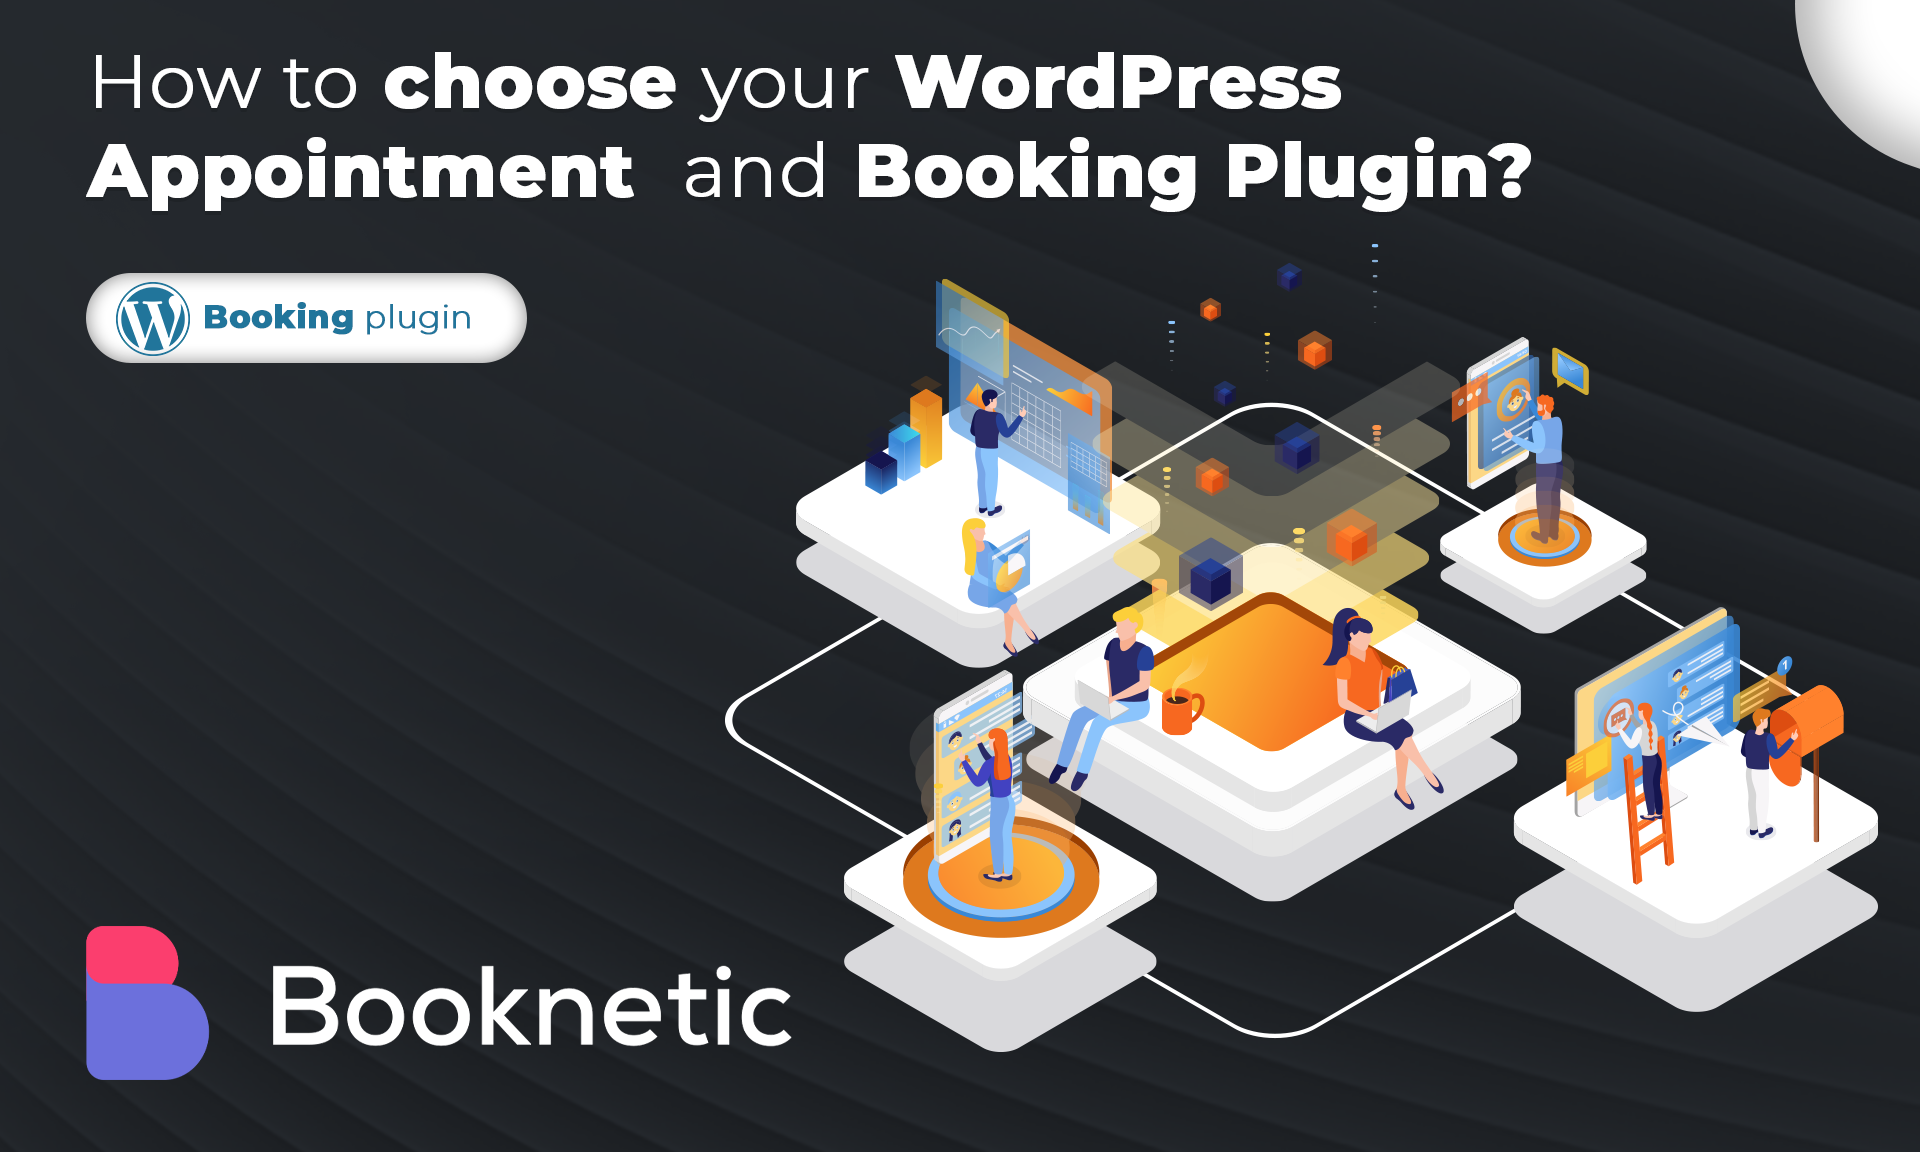 How to choose your WordPress Appointment and Booking Plugin?